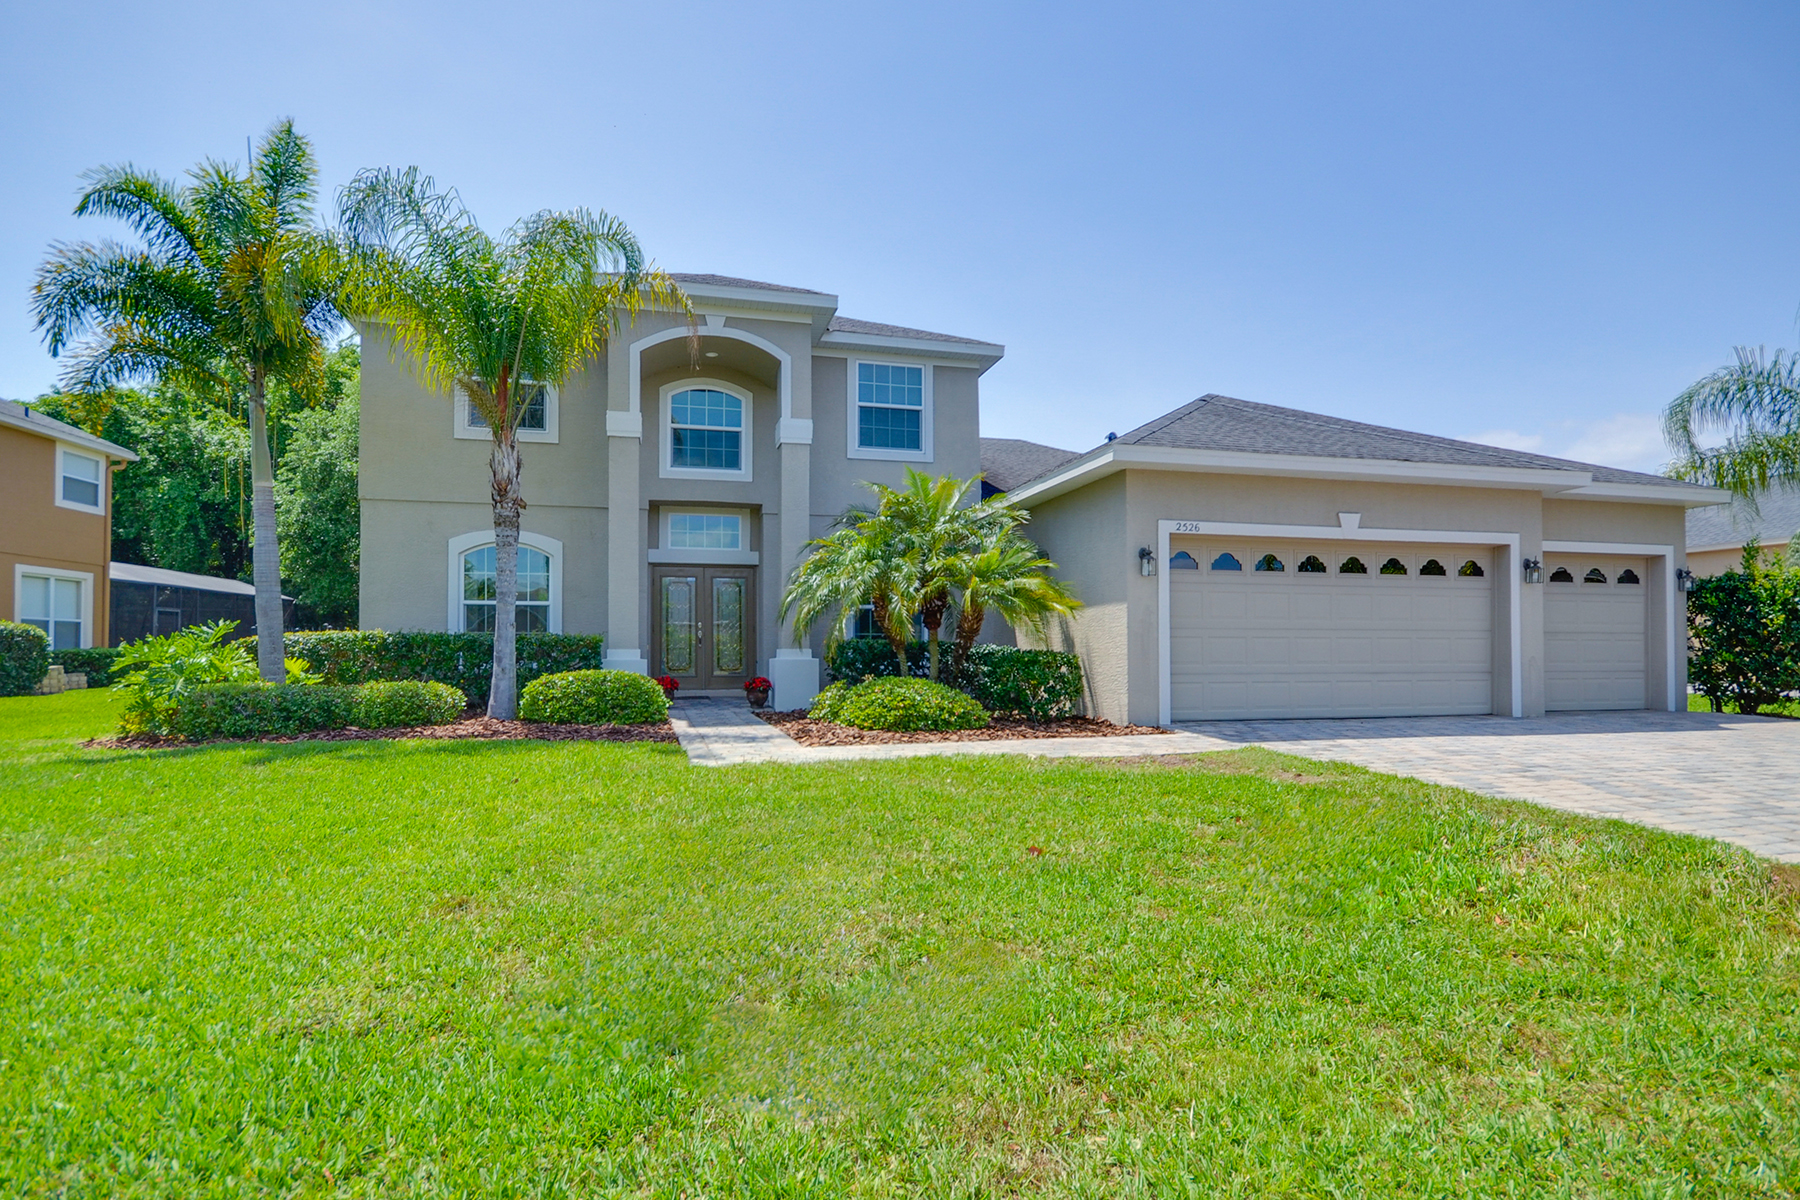 Single Family Home for Sale at ST. CLOUD 2526 Water Valley Dr St. Cloud, Florida, 34771 United States